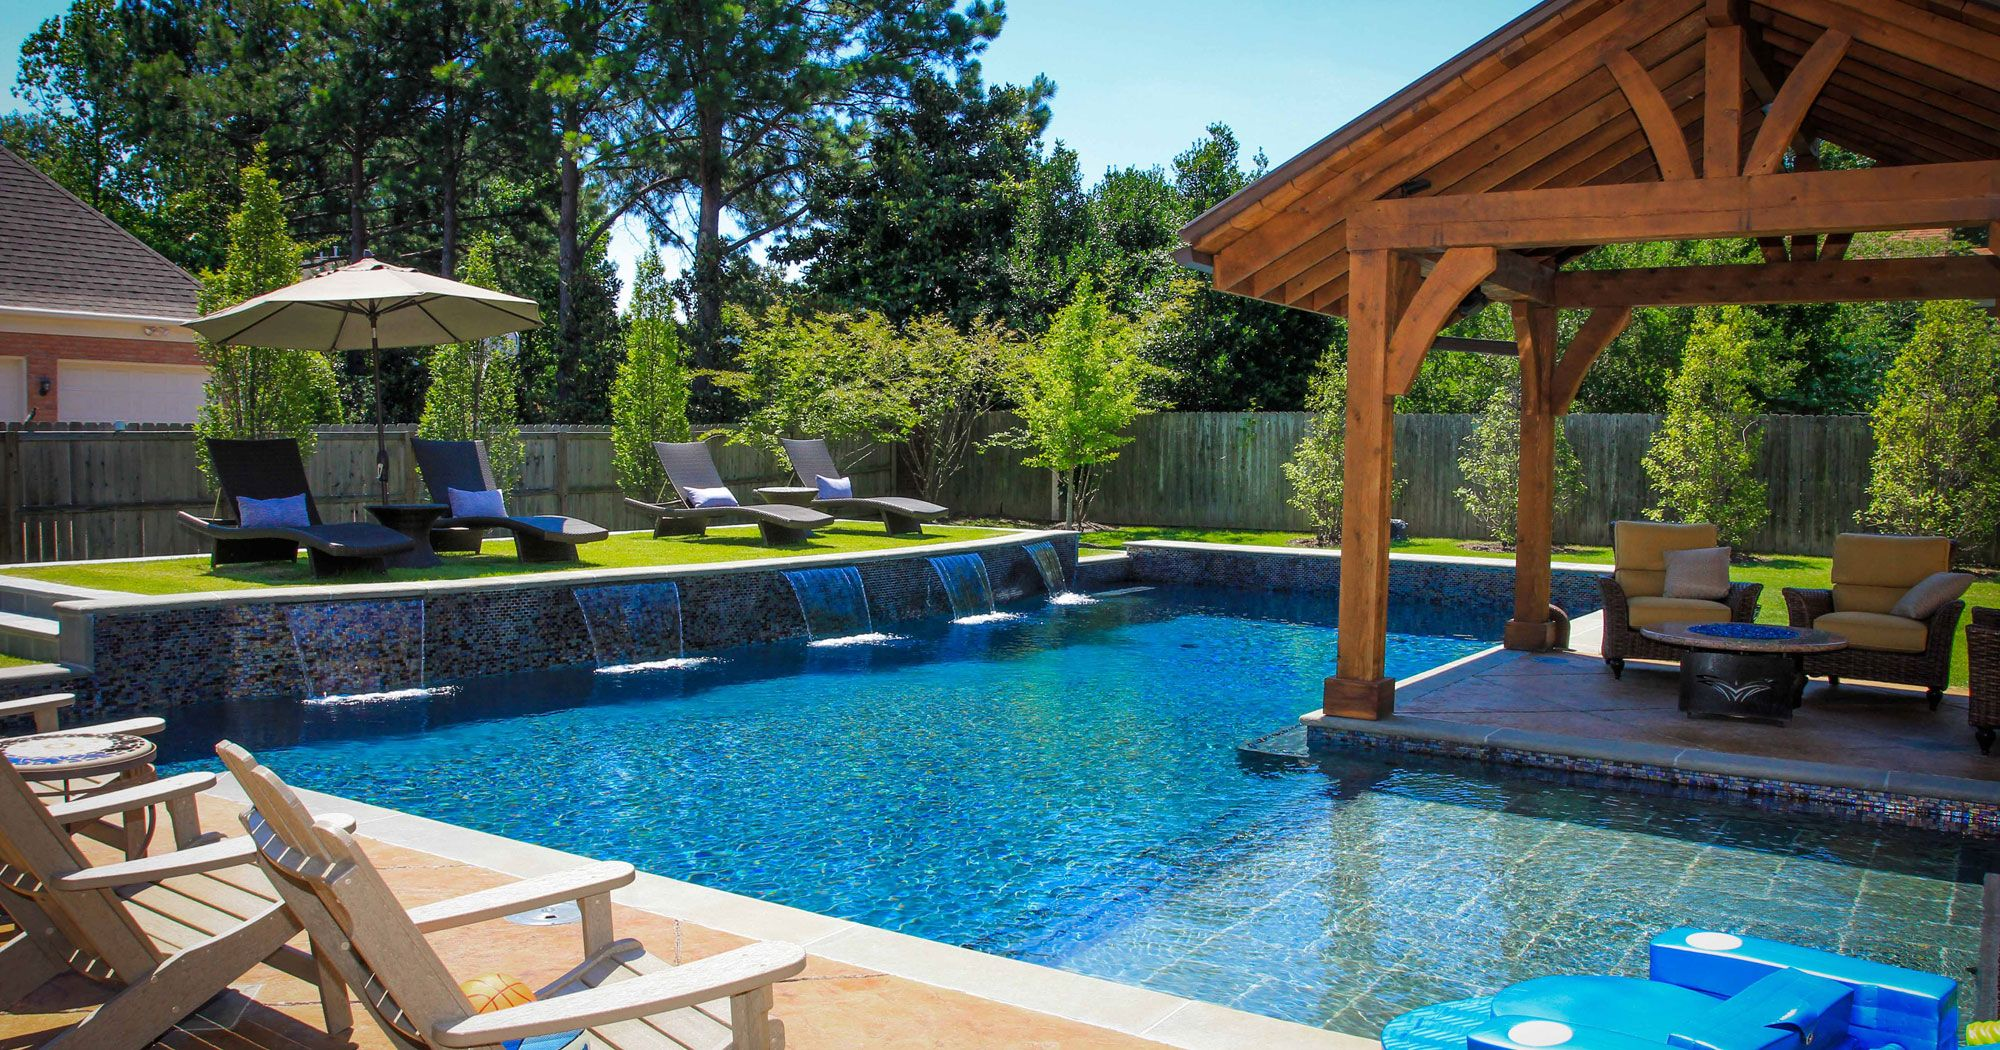 amazing backyard pool ideas | ideas, pool designs for small laguna